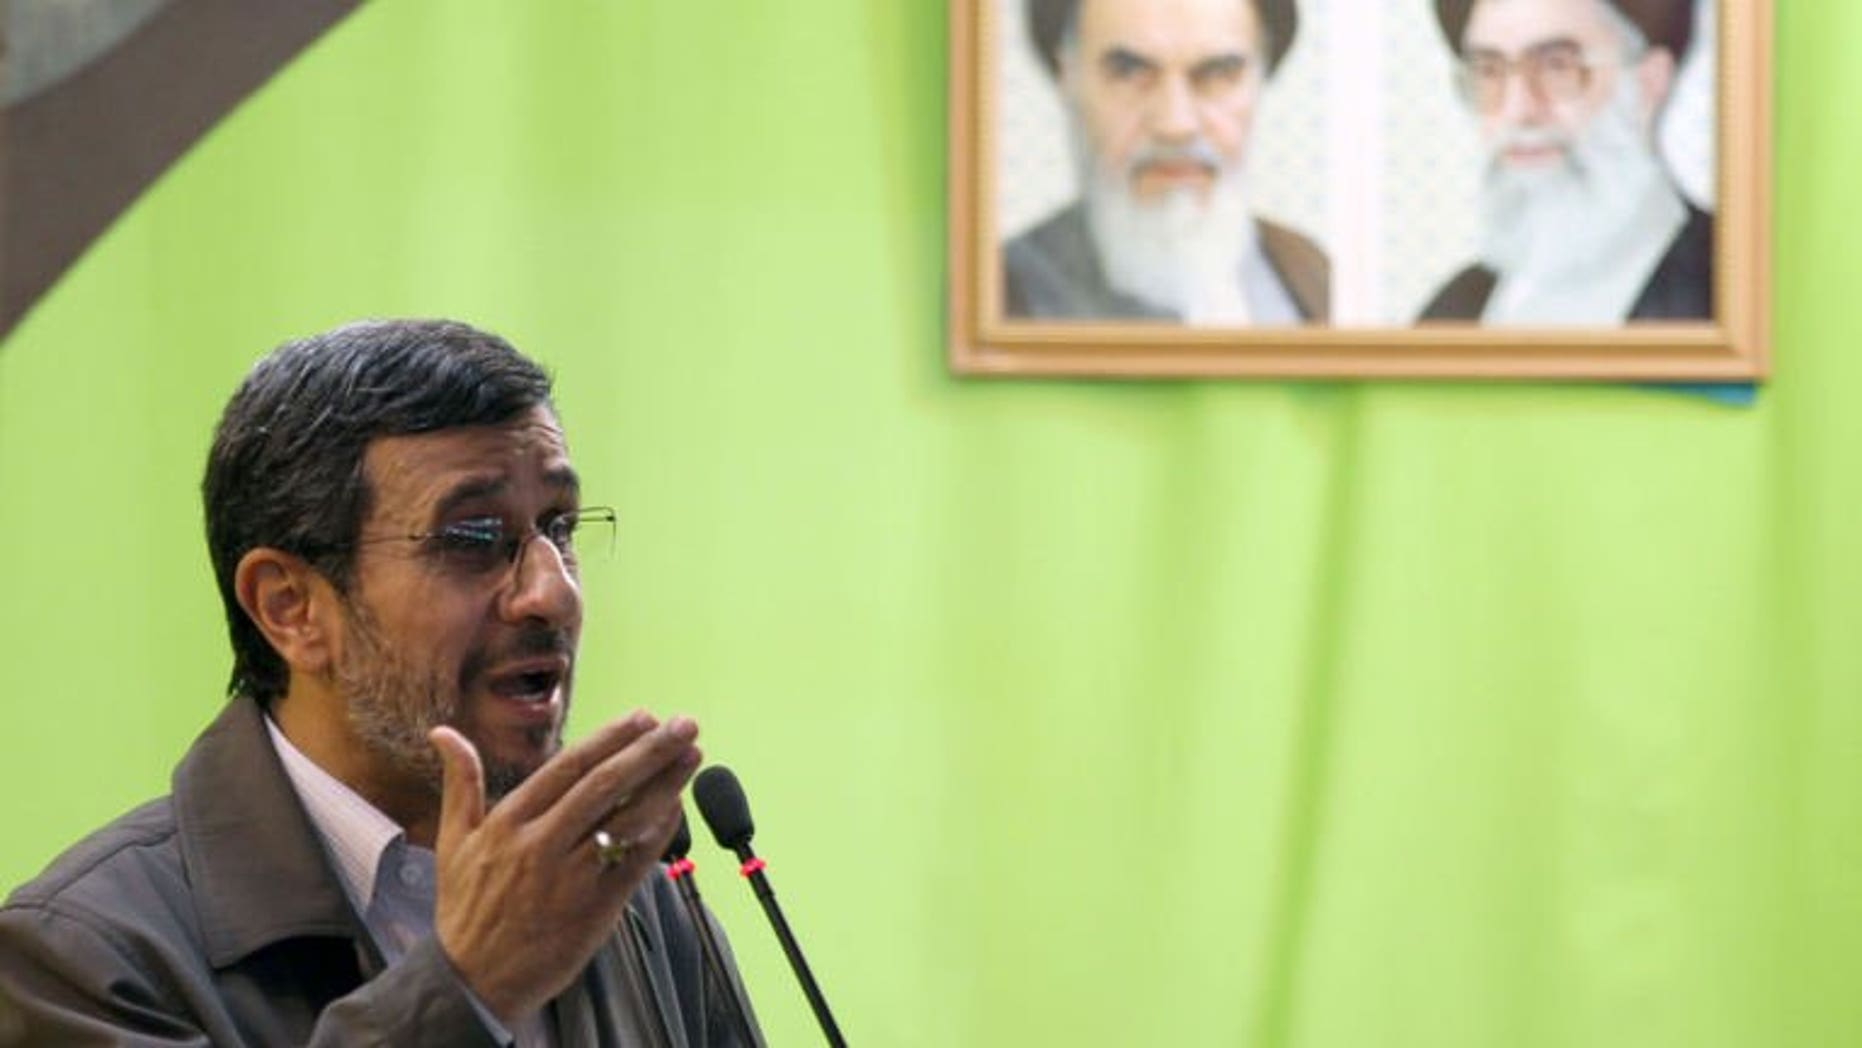 """Iranian President Mahmoud Ahmadinejad delivers a sermon at Tehran University, on August 2, 2013. Ahmadinejad has warned arch-foe Israel in one of his last public speeches that a regional storm was brewing that would """"uproot"""" the Jewish state."""